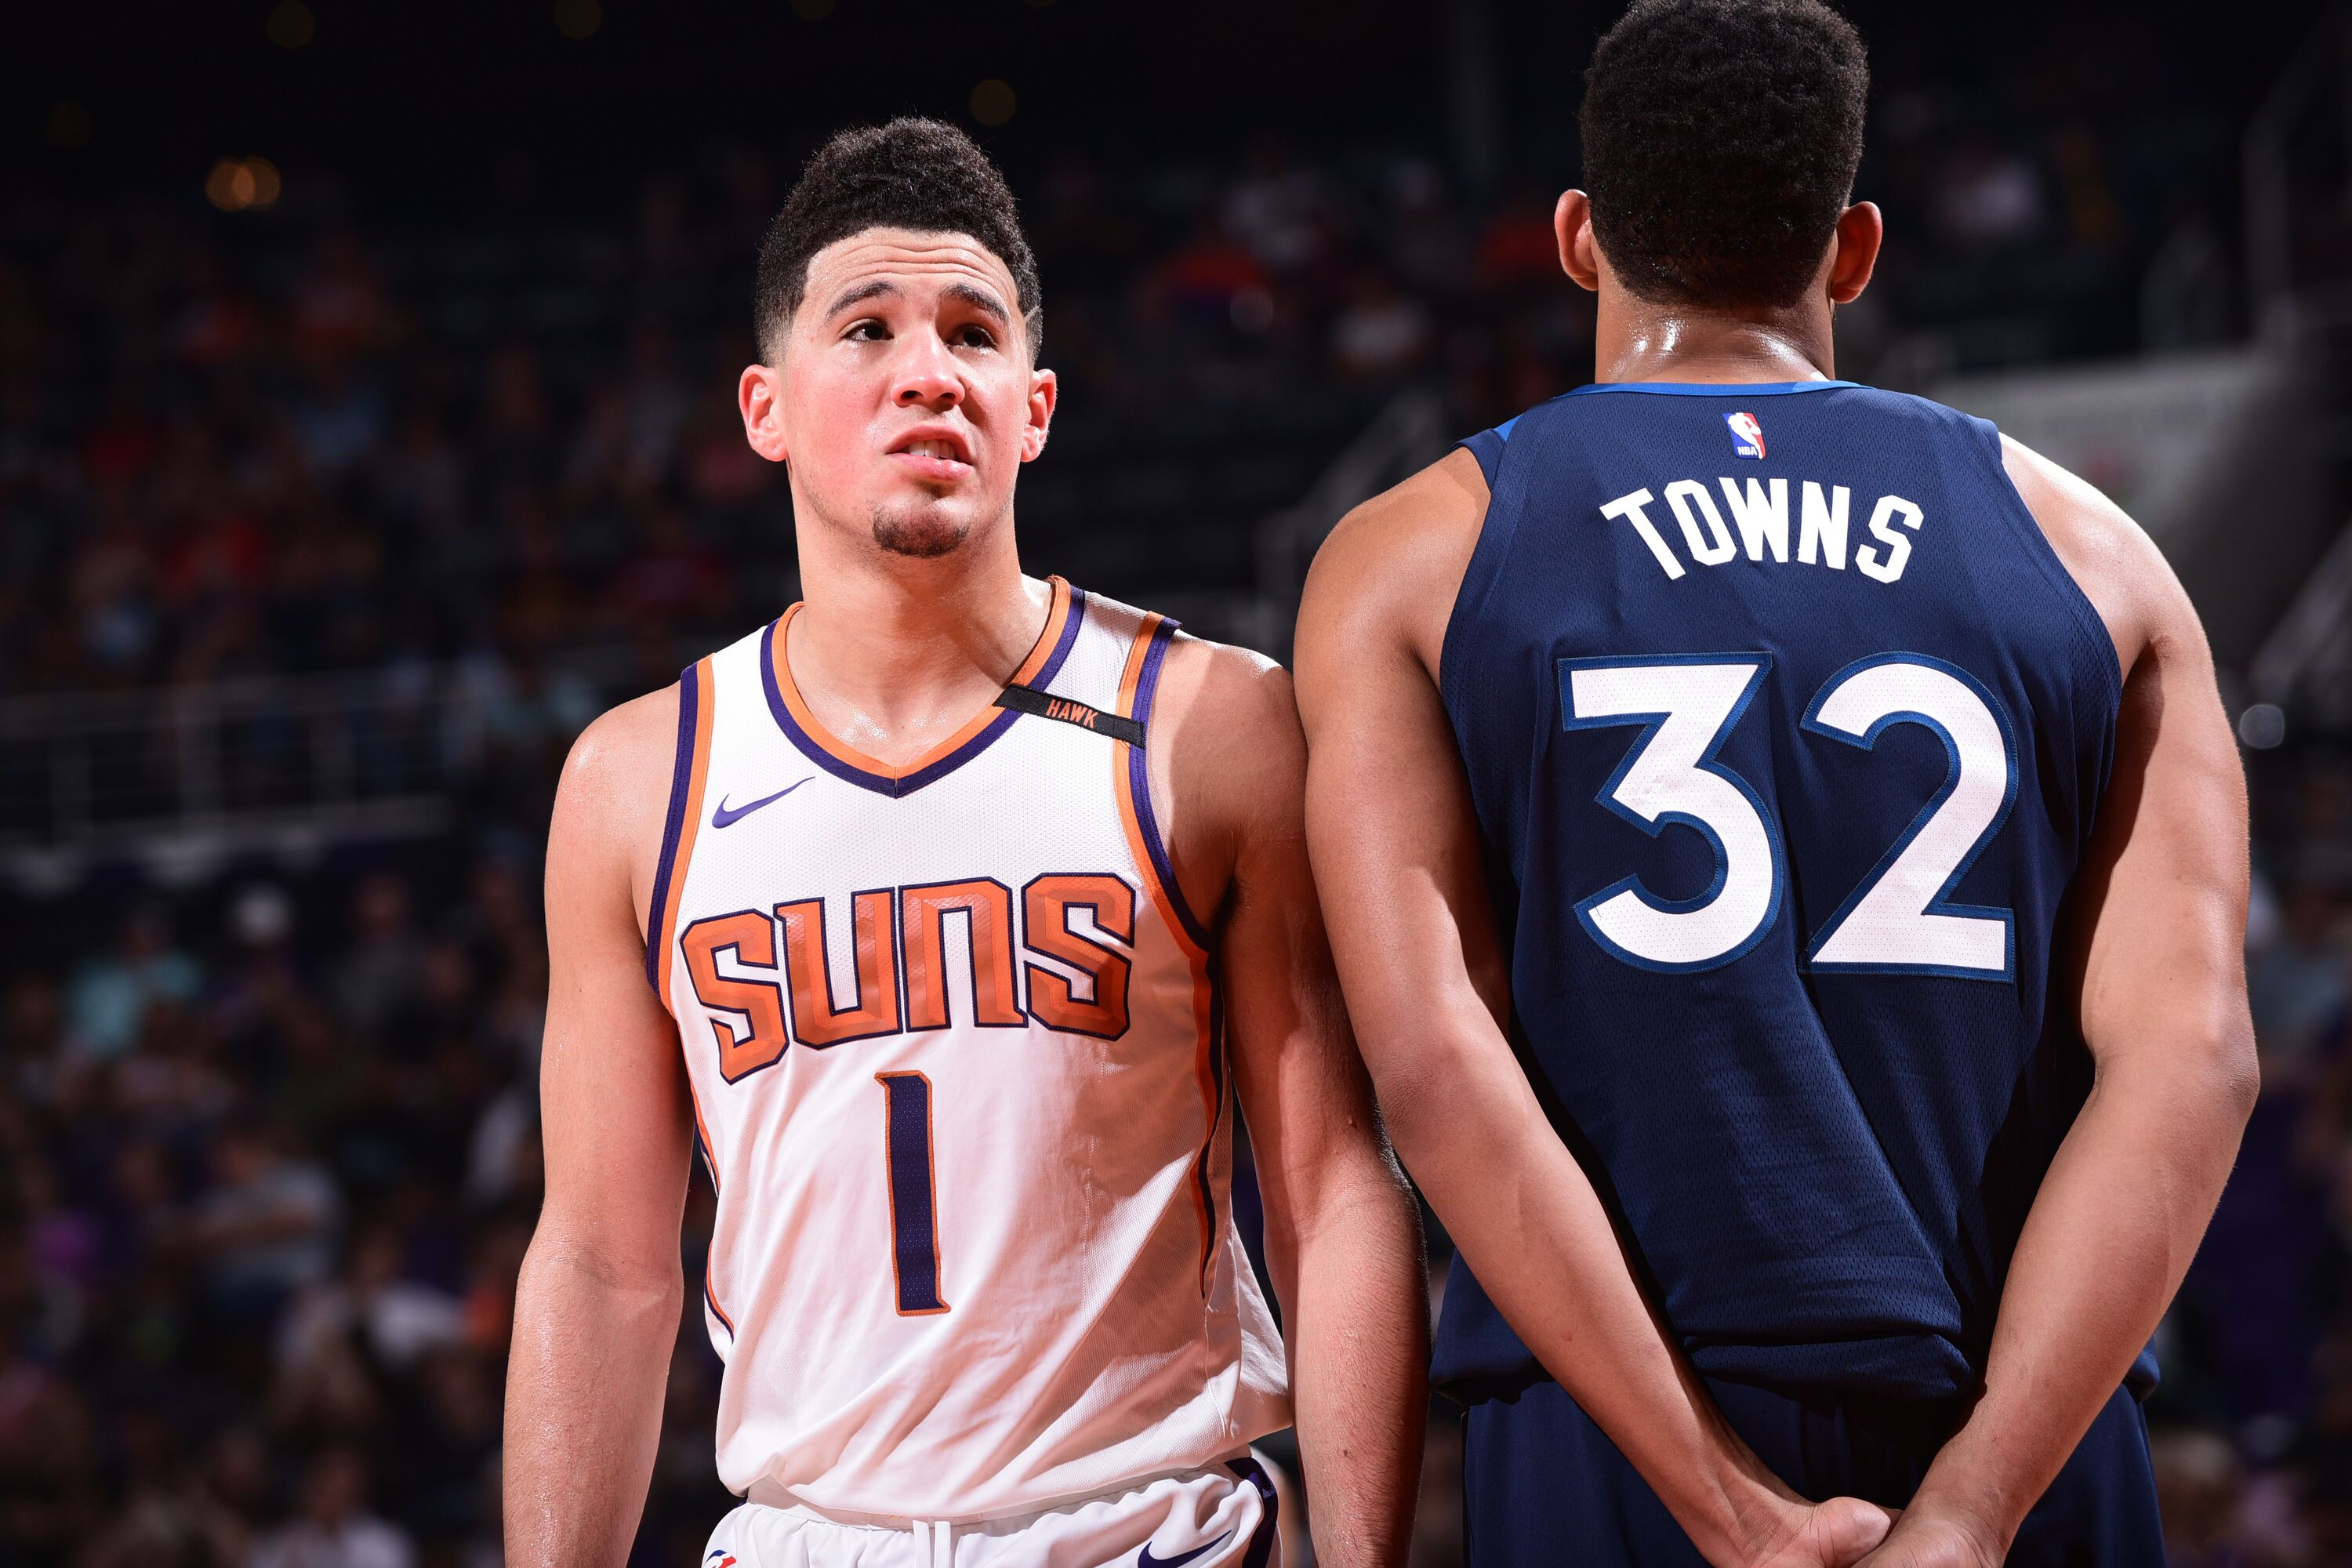 6a48e0c98 Must repeat  Suns find winning formula vs Wolves - Valley of the Suns